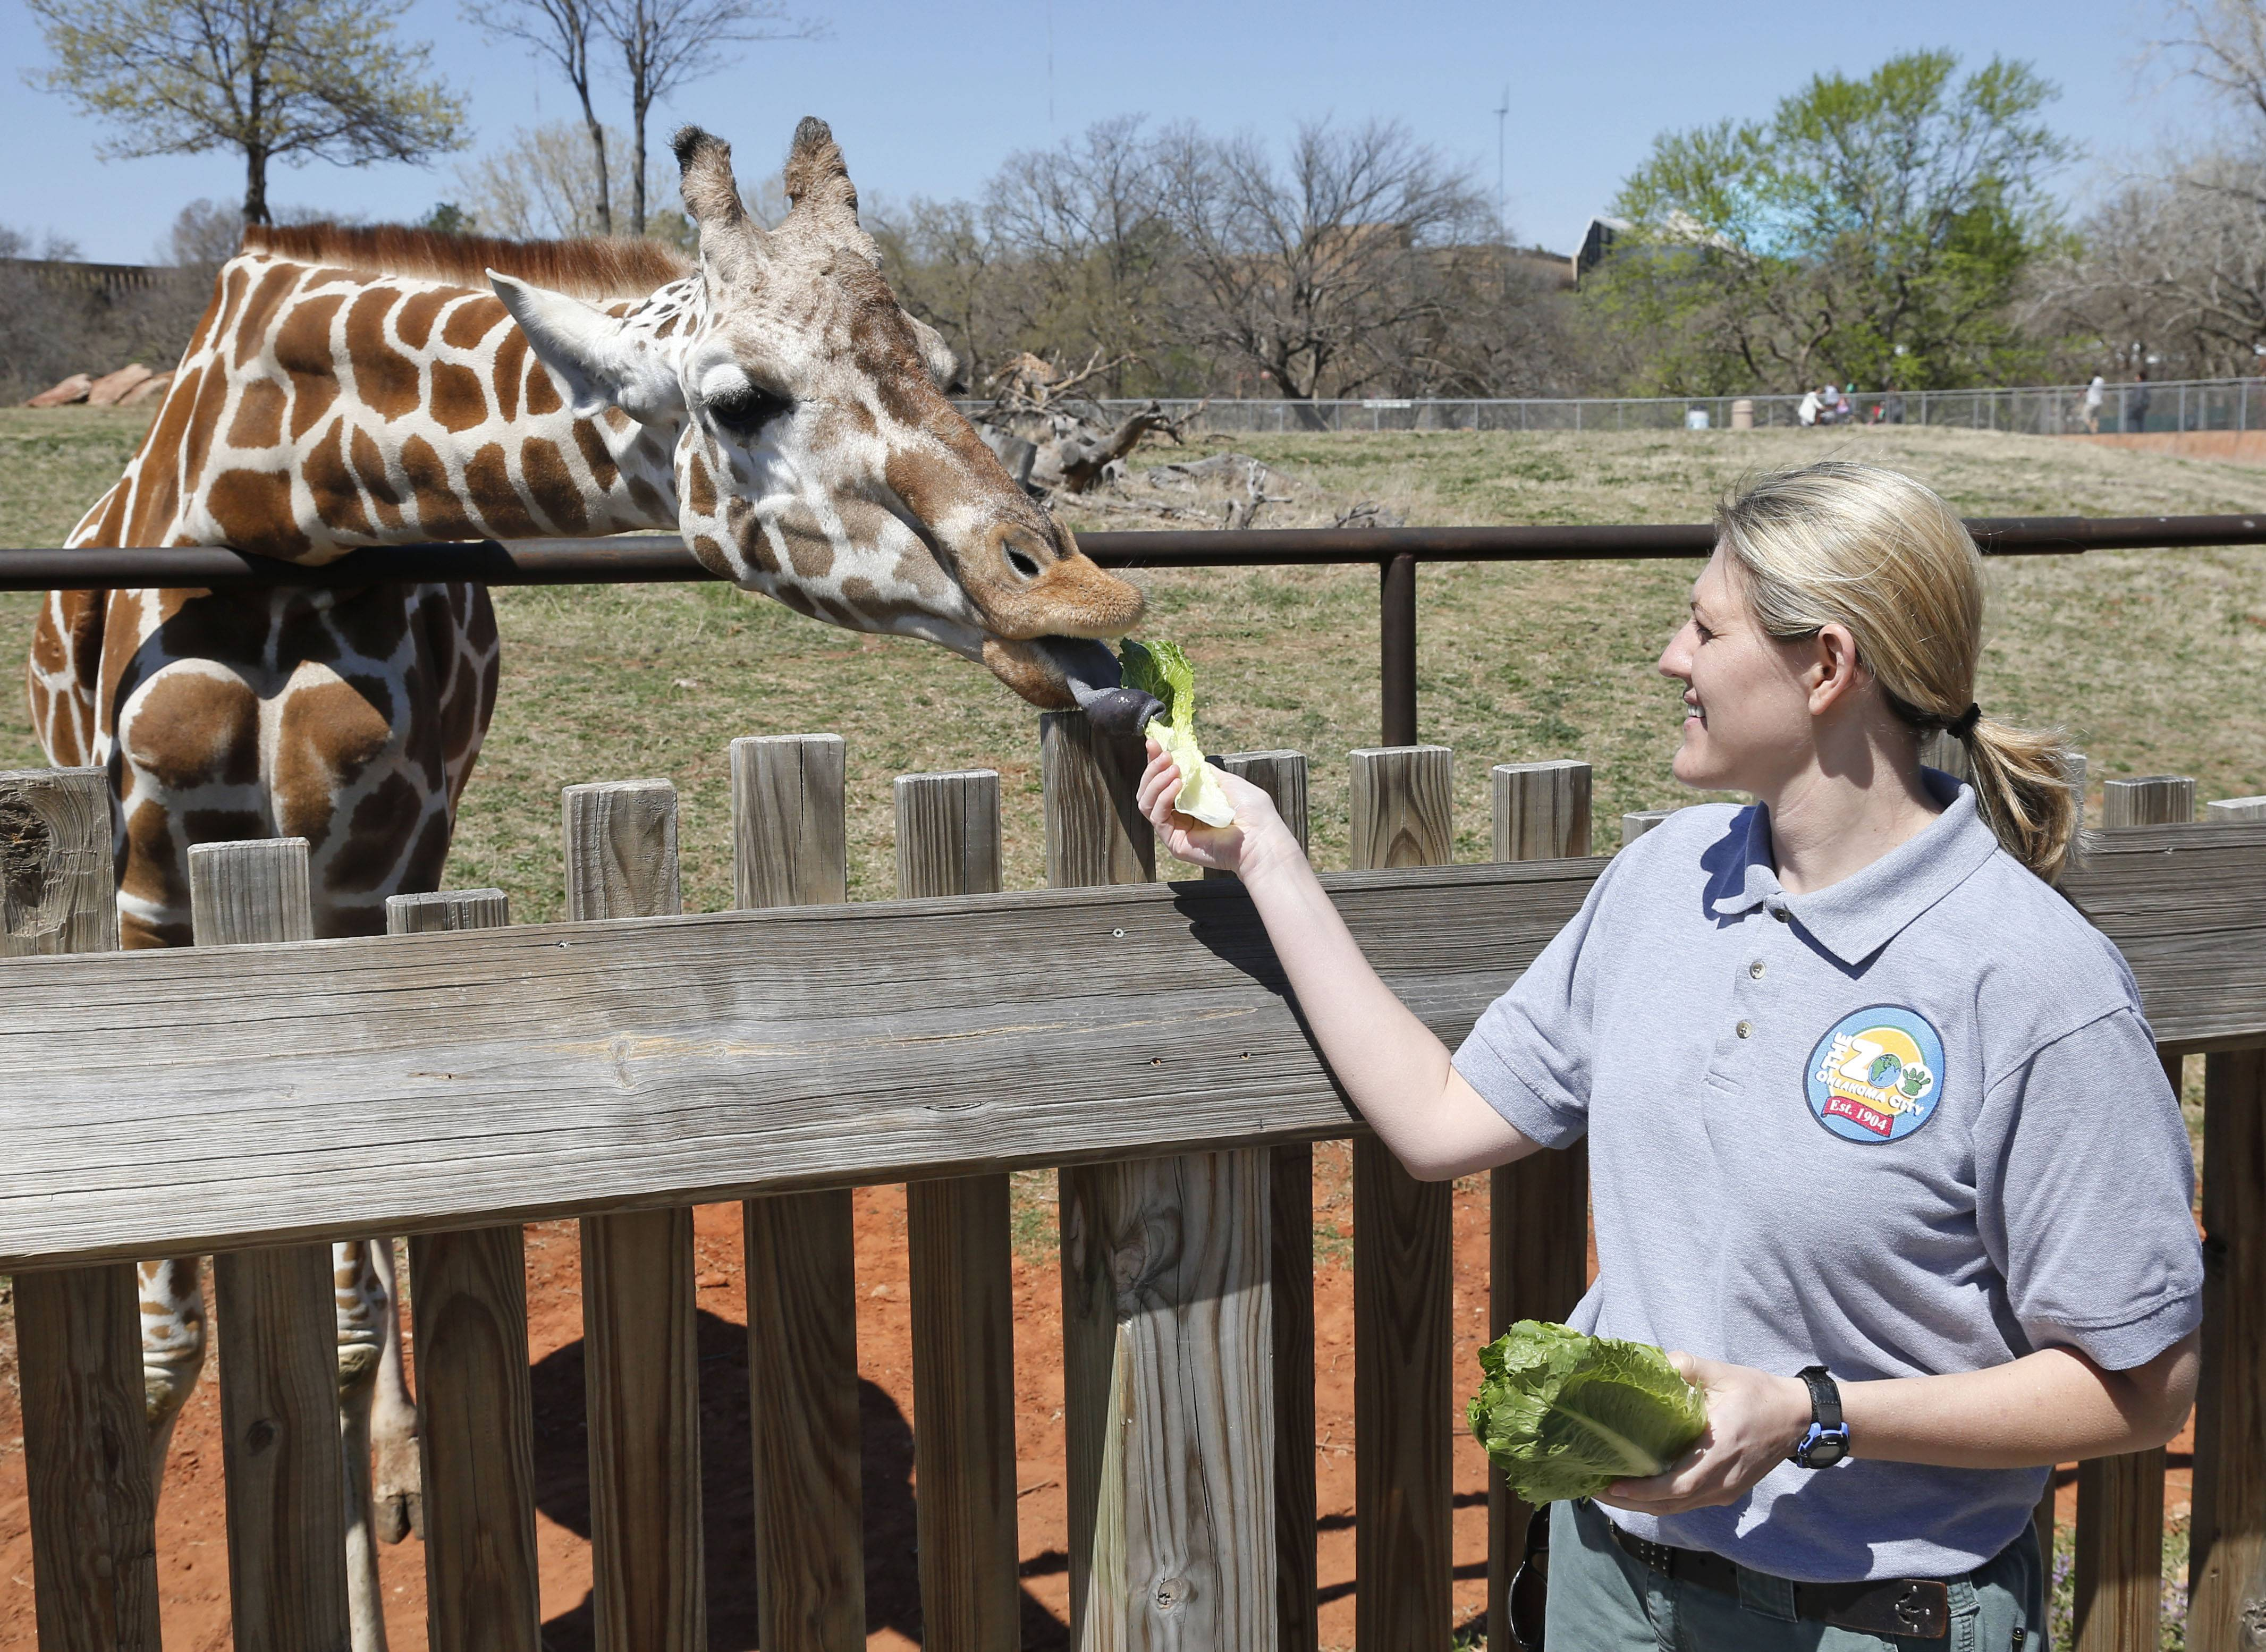 Dr. Gretchen Cole, associate veterinarian at the Oklahoma City Zoo, feeds Ellie, a giraffe at the zoo, in Oklahoma City, Friday, April 4, 2014. Ellie's six-month-old daughter, Kyah, will undergo a radical surgery early next week that Oklahoma State University veterinarians hope will save her life. Kyah will undergo surgery at Oklahoma State University to repair a vessel in her heart that has wrapped around her esophagus, making it difficult for her to eat solid foods, at a time when her mother is trying to wean her.